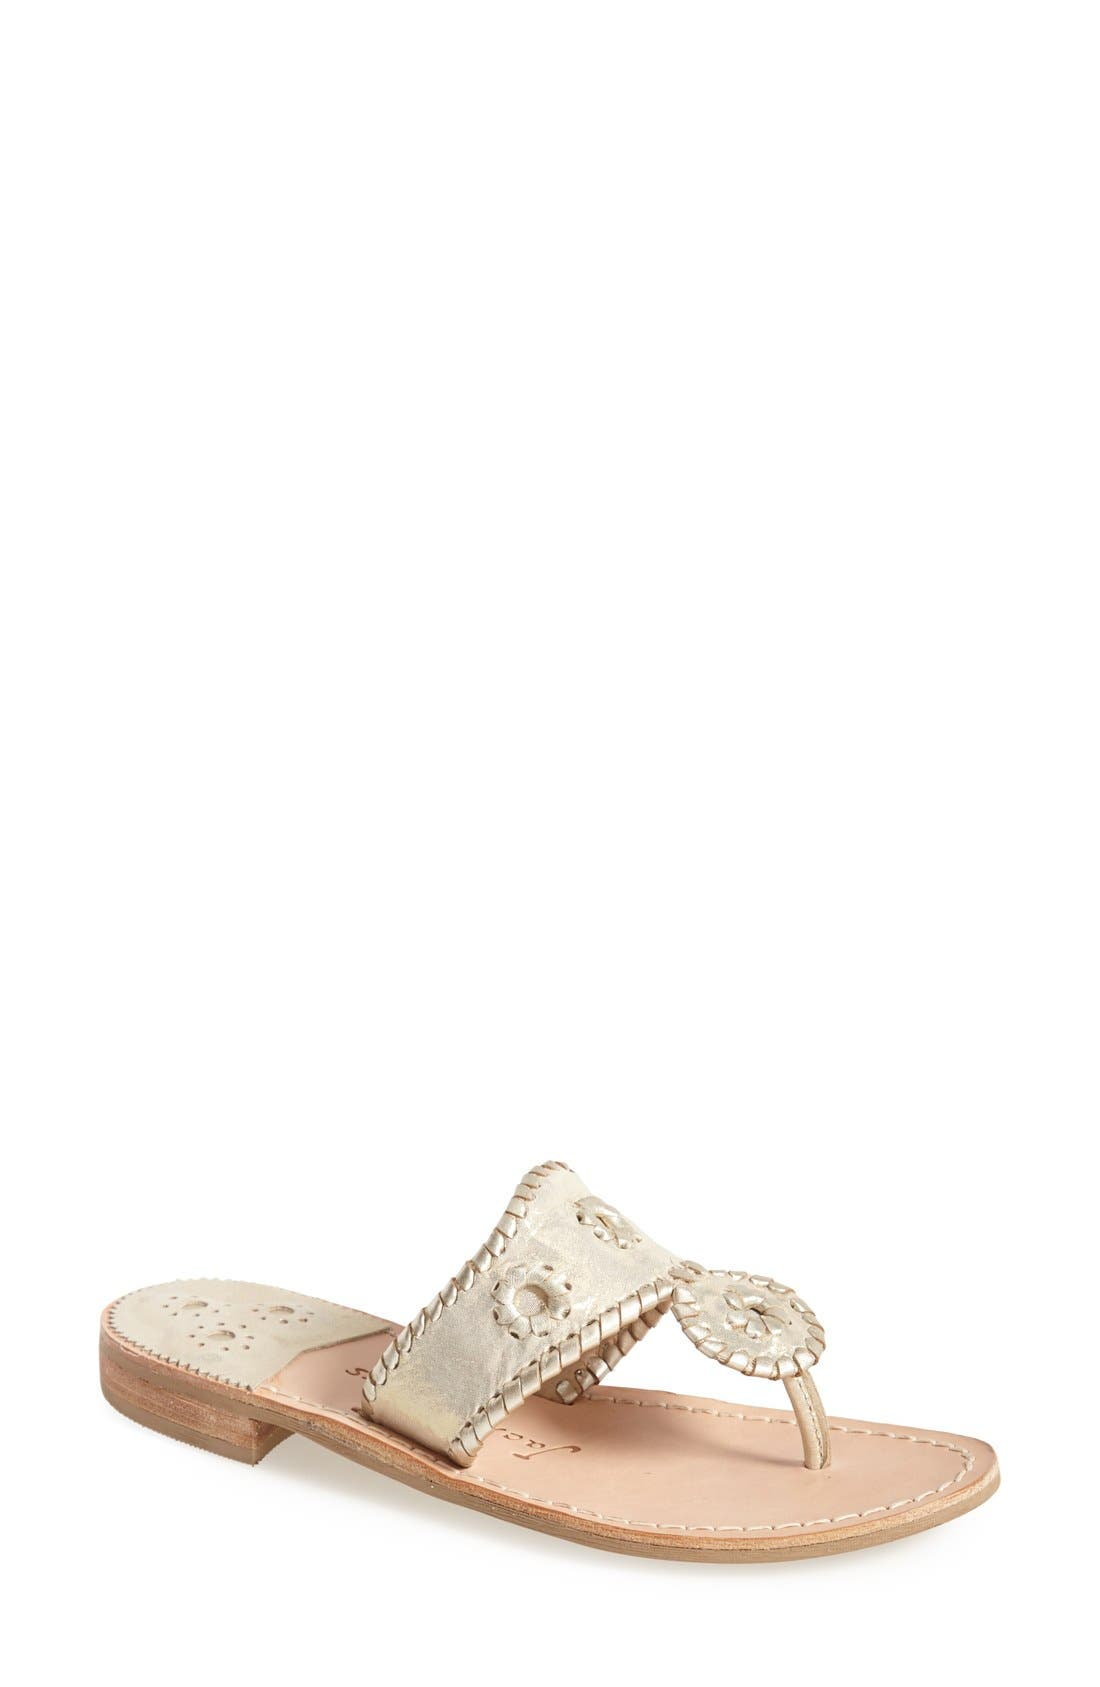 Main Image - Jack Rogers 'Stardust' Thong Sandal (Women)